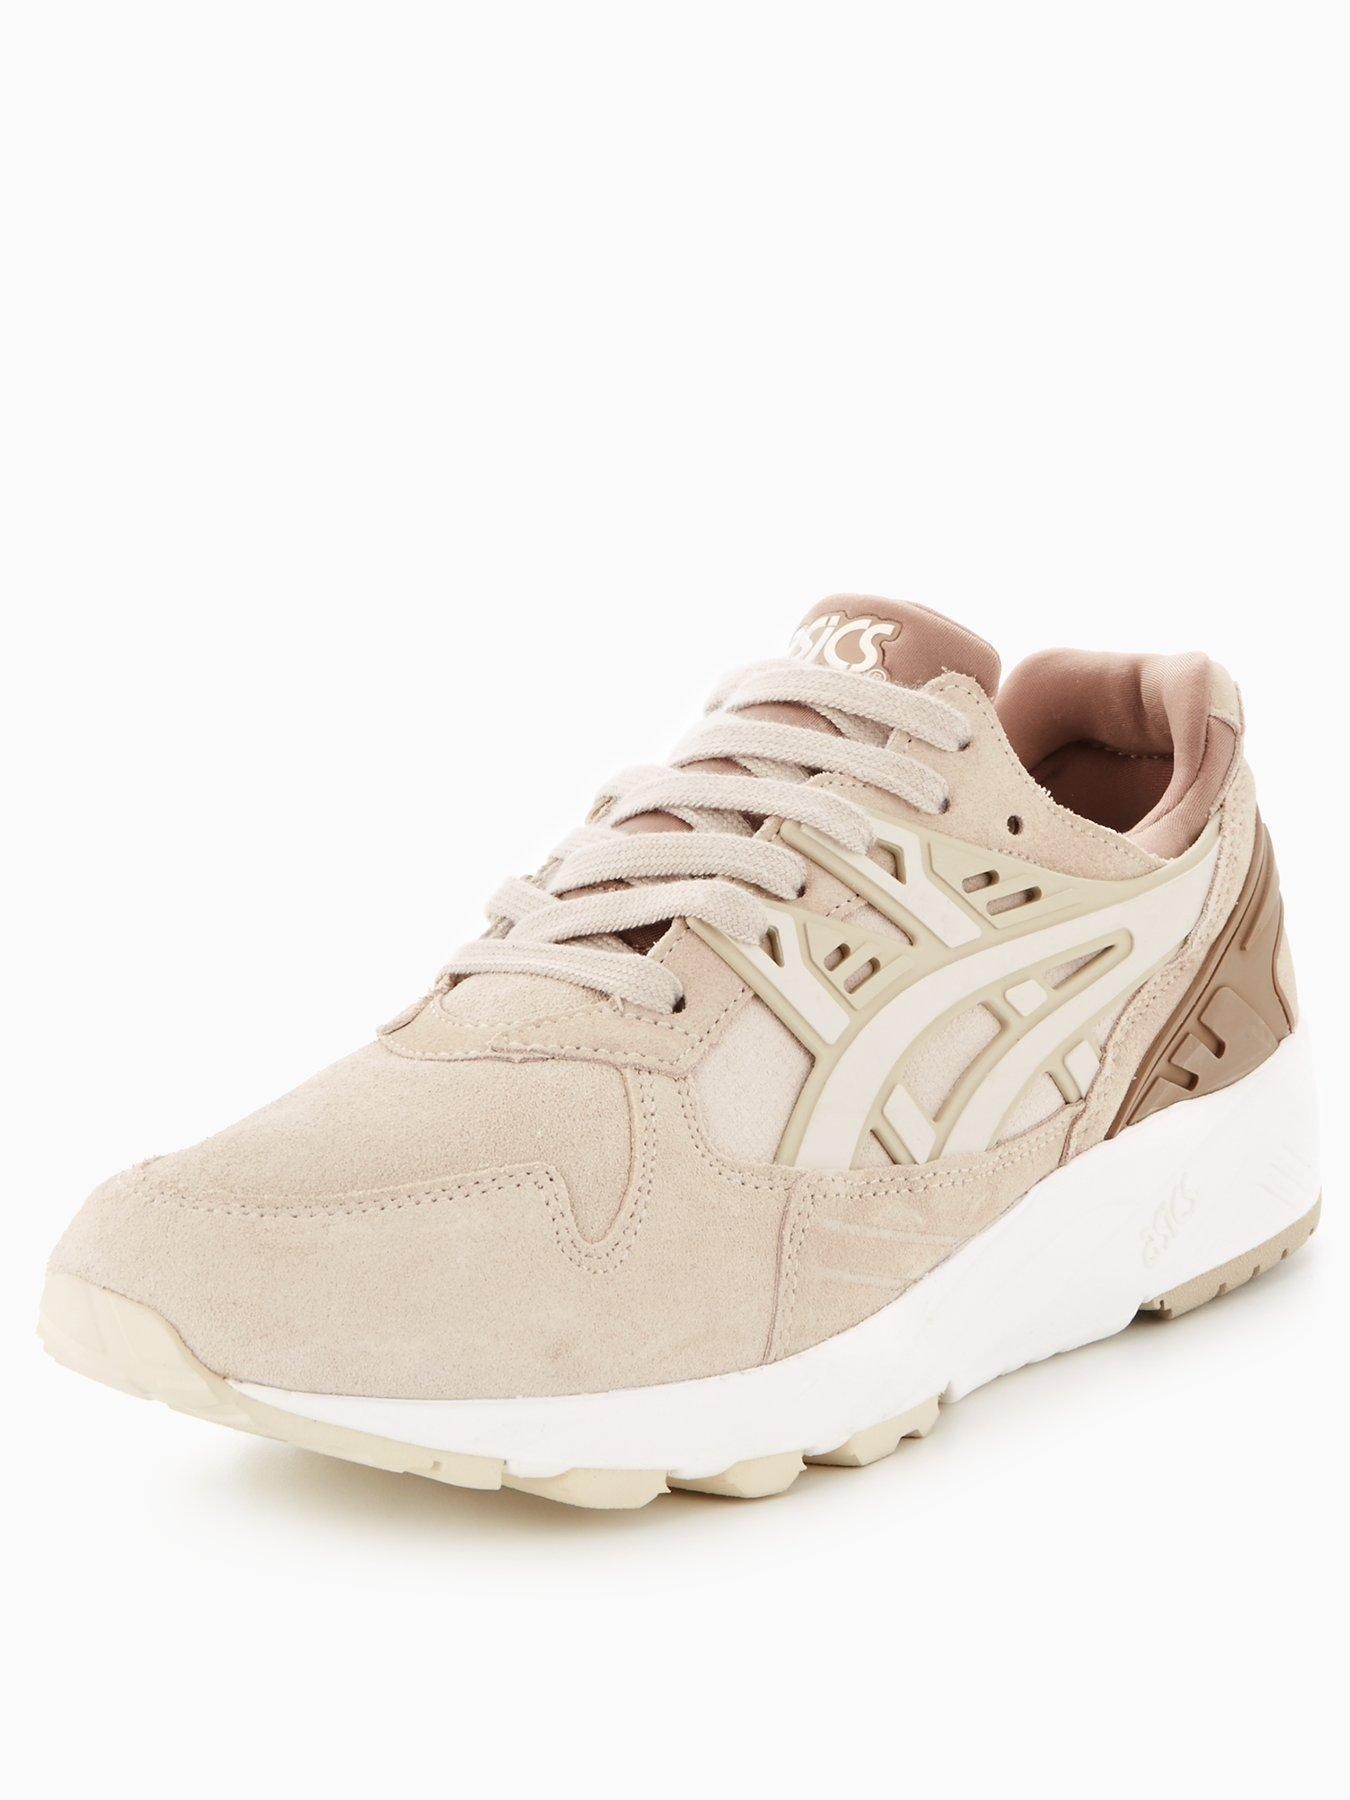 Asics Gel Kayano Trainers 1600192732 Men's Shoes Asics Trainers